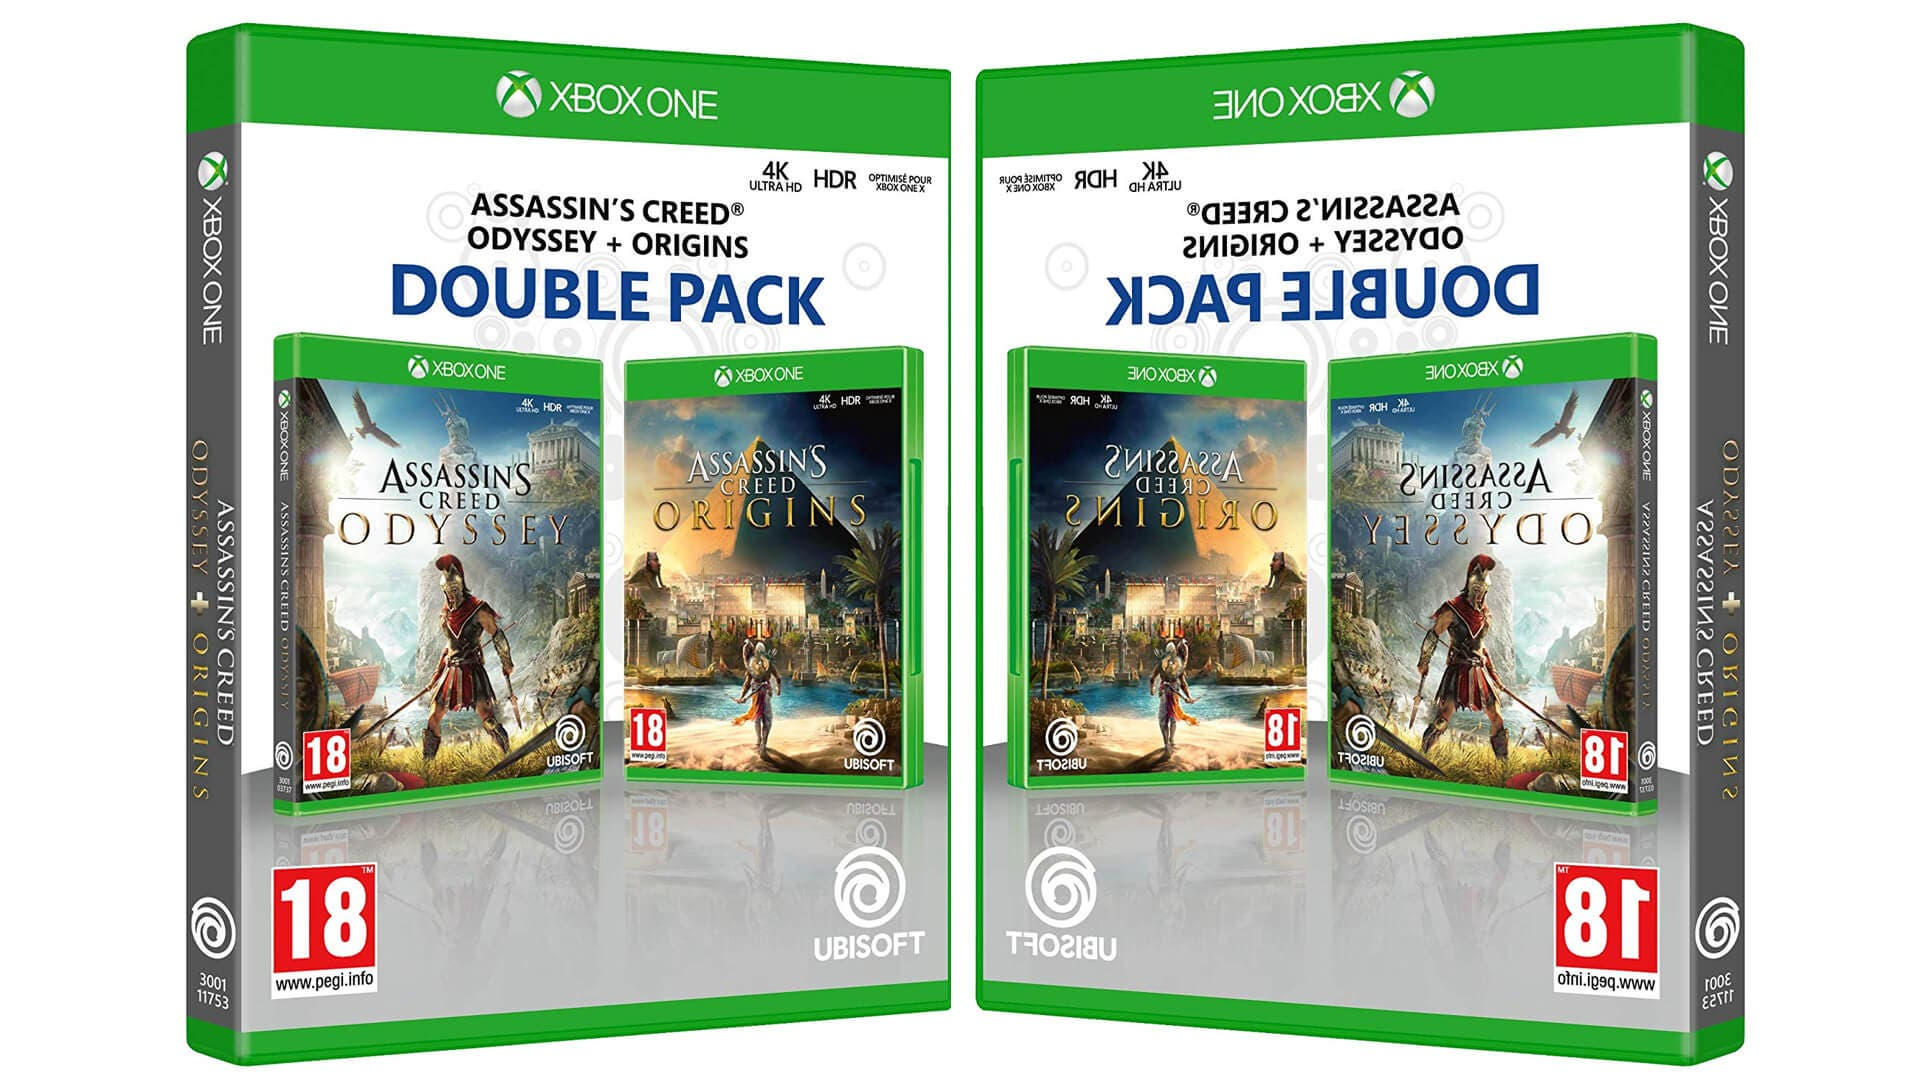 Gran oferta de Doble Pack Assassin's Creed Origins + Odyssey para Xbox One 7